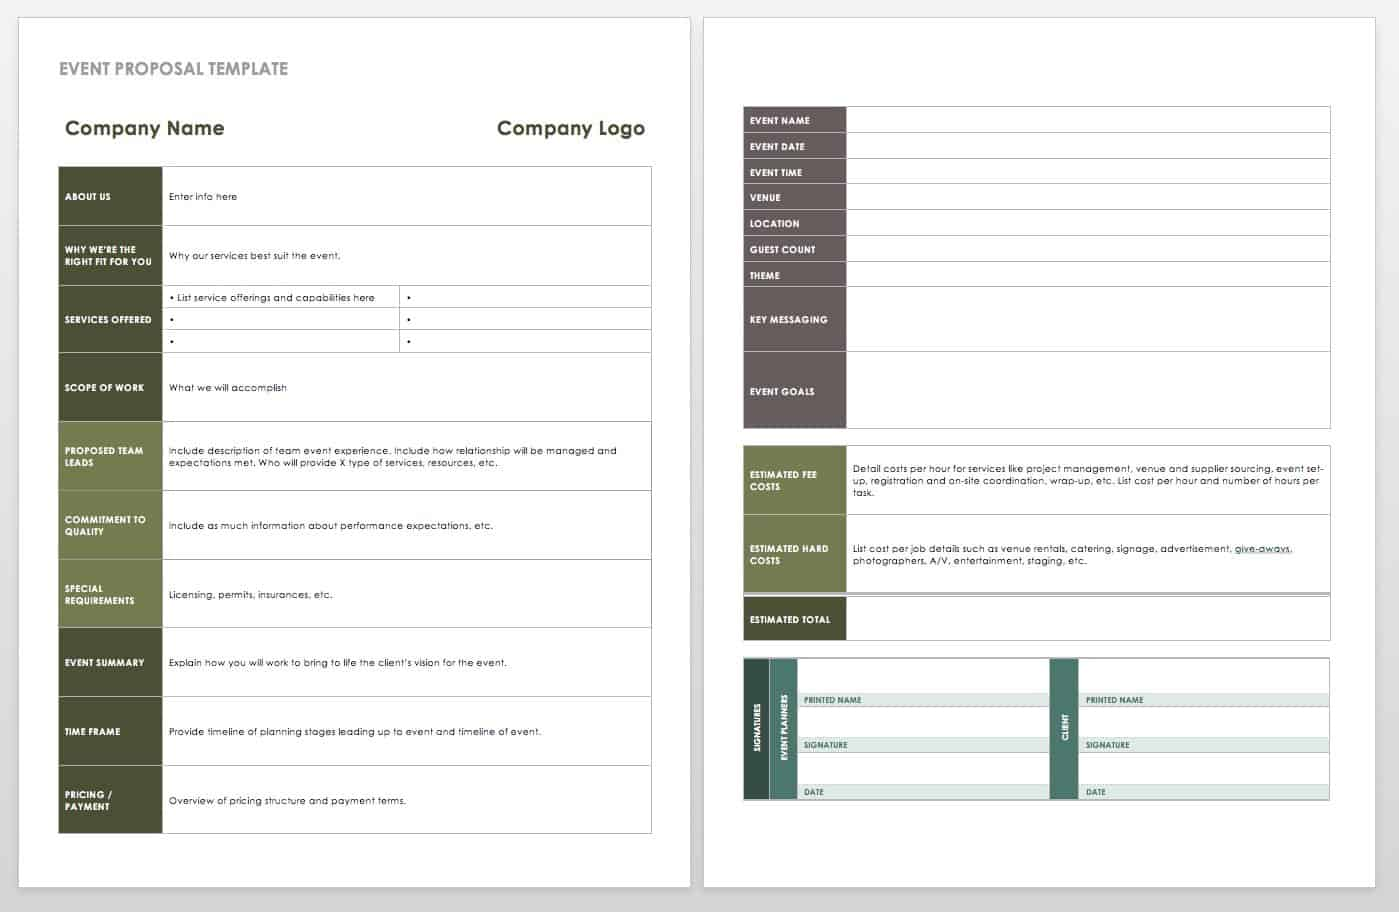 21 Free Event Planning Templates